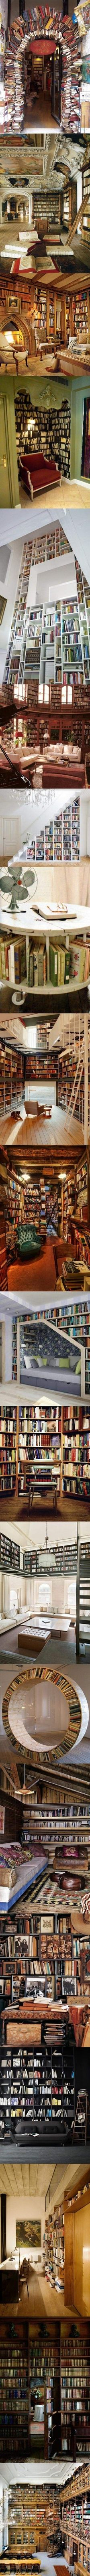 Gorgeous bookshelves and libraries.